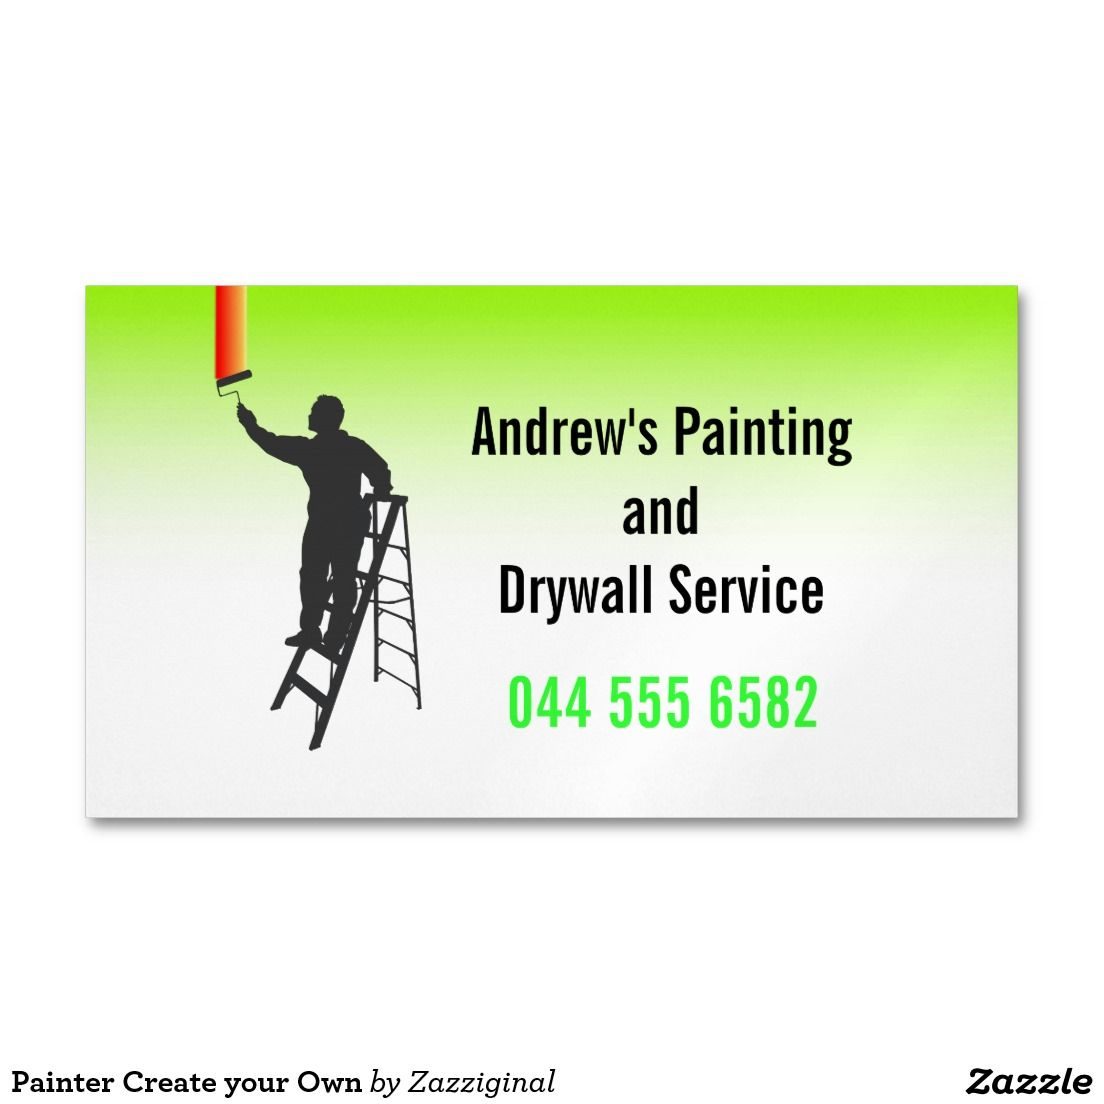 Painter Create your Own Magnetic Business Card | Magnetic business ...